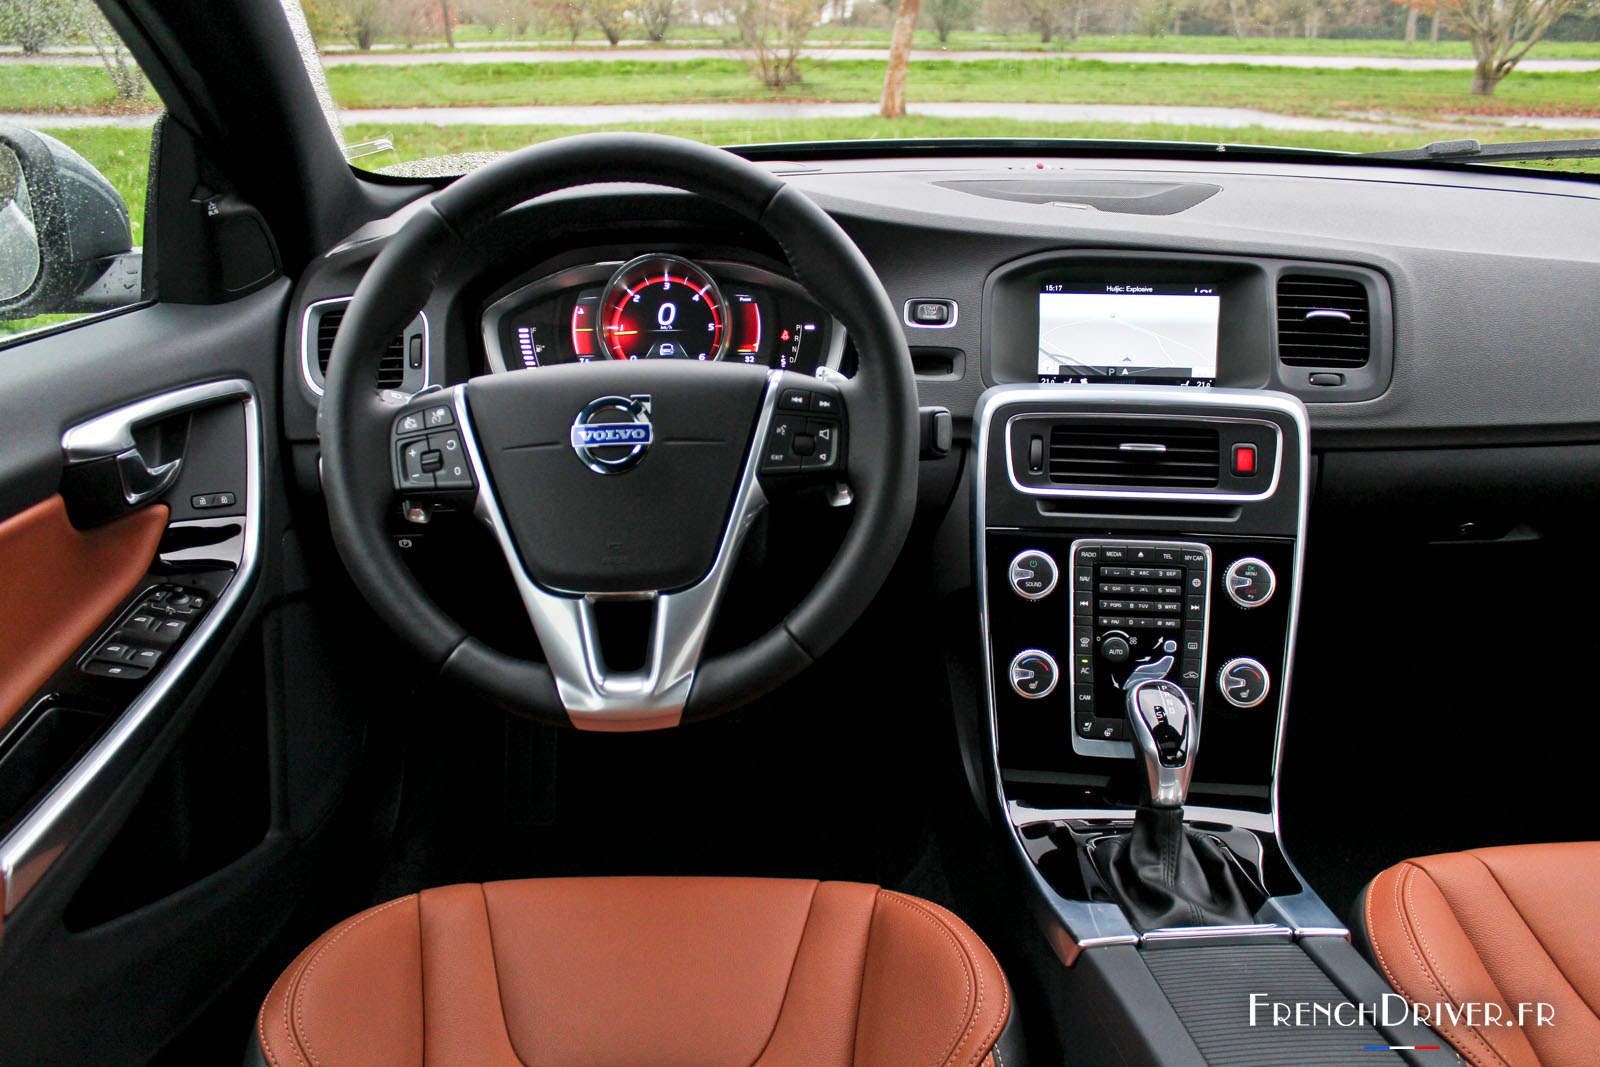 essai de la volvo s60 s rieuse su doise french driver. Black Bedroom Furniture Sets. Home Design Ideas